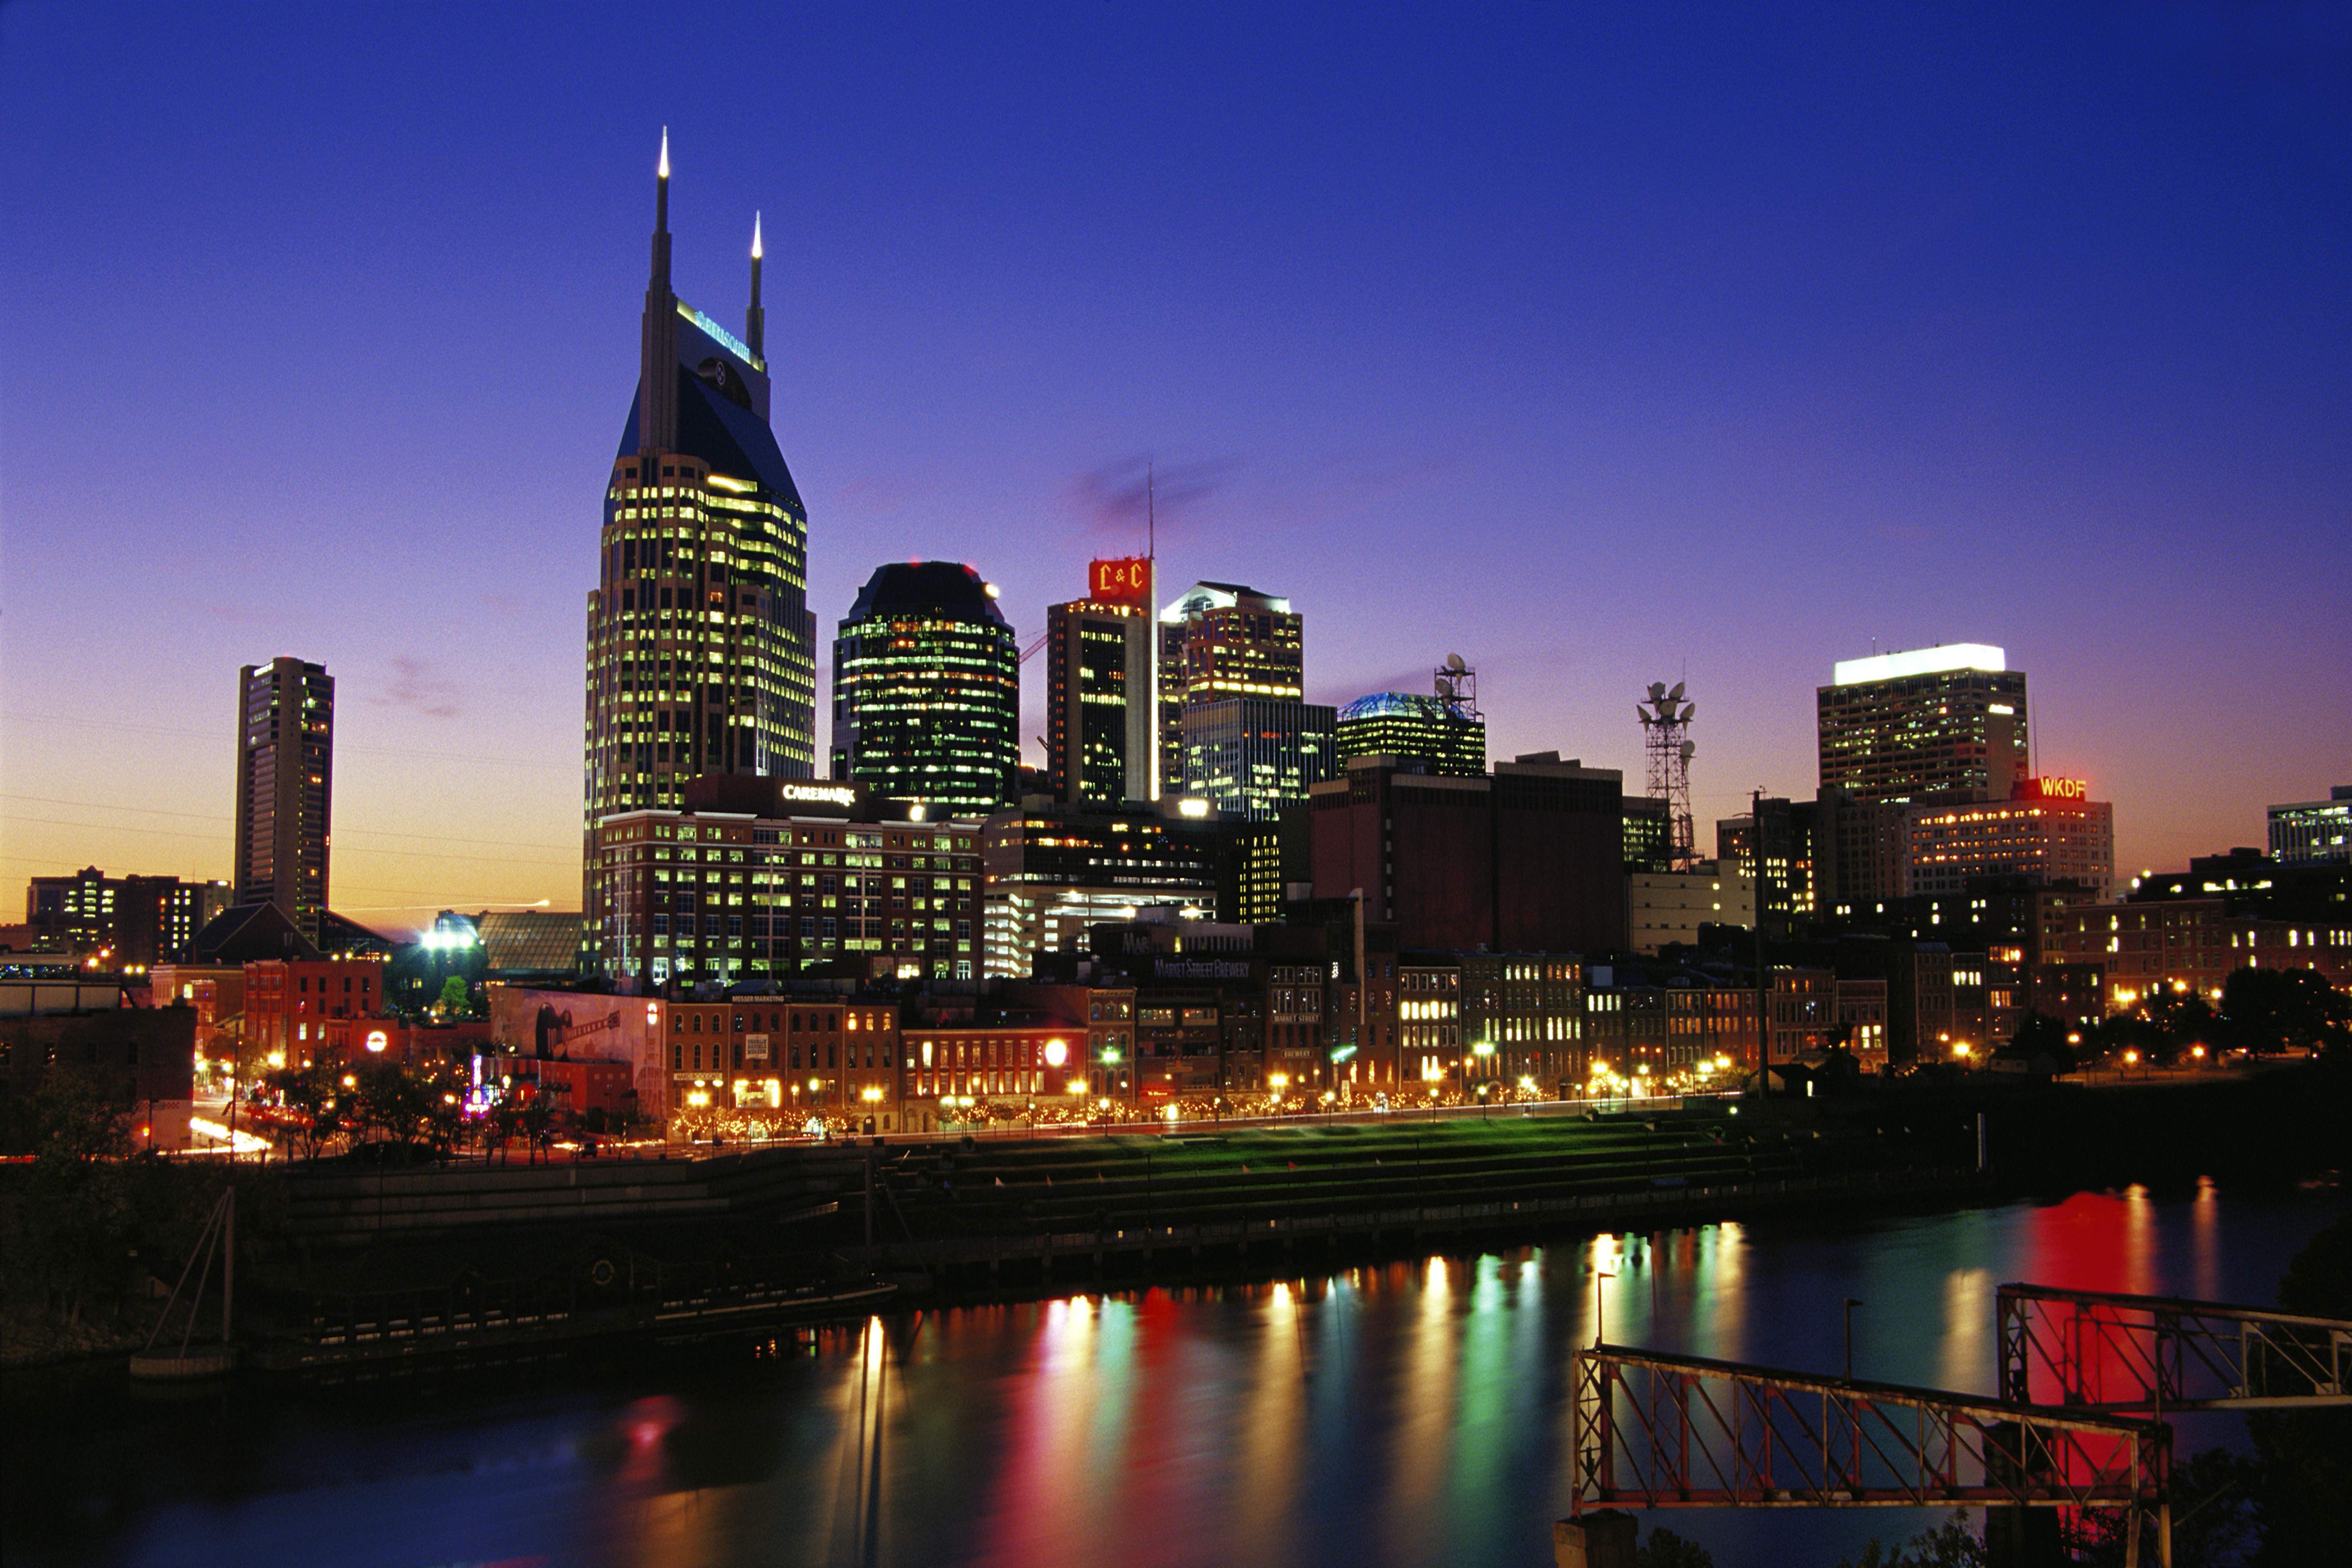 nashville the capital of tennessee Nashville is the capital of tennessee and known for its music industries, earning it the nickname music city, and it is also known for several colleges and universities  nashville has a consolidated city-county government with 6 municipali.